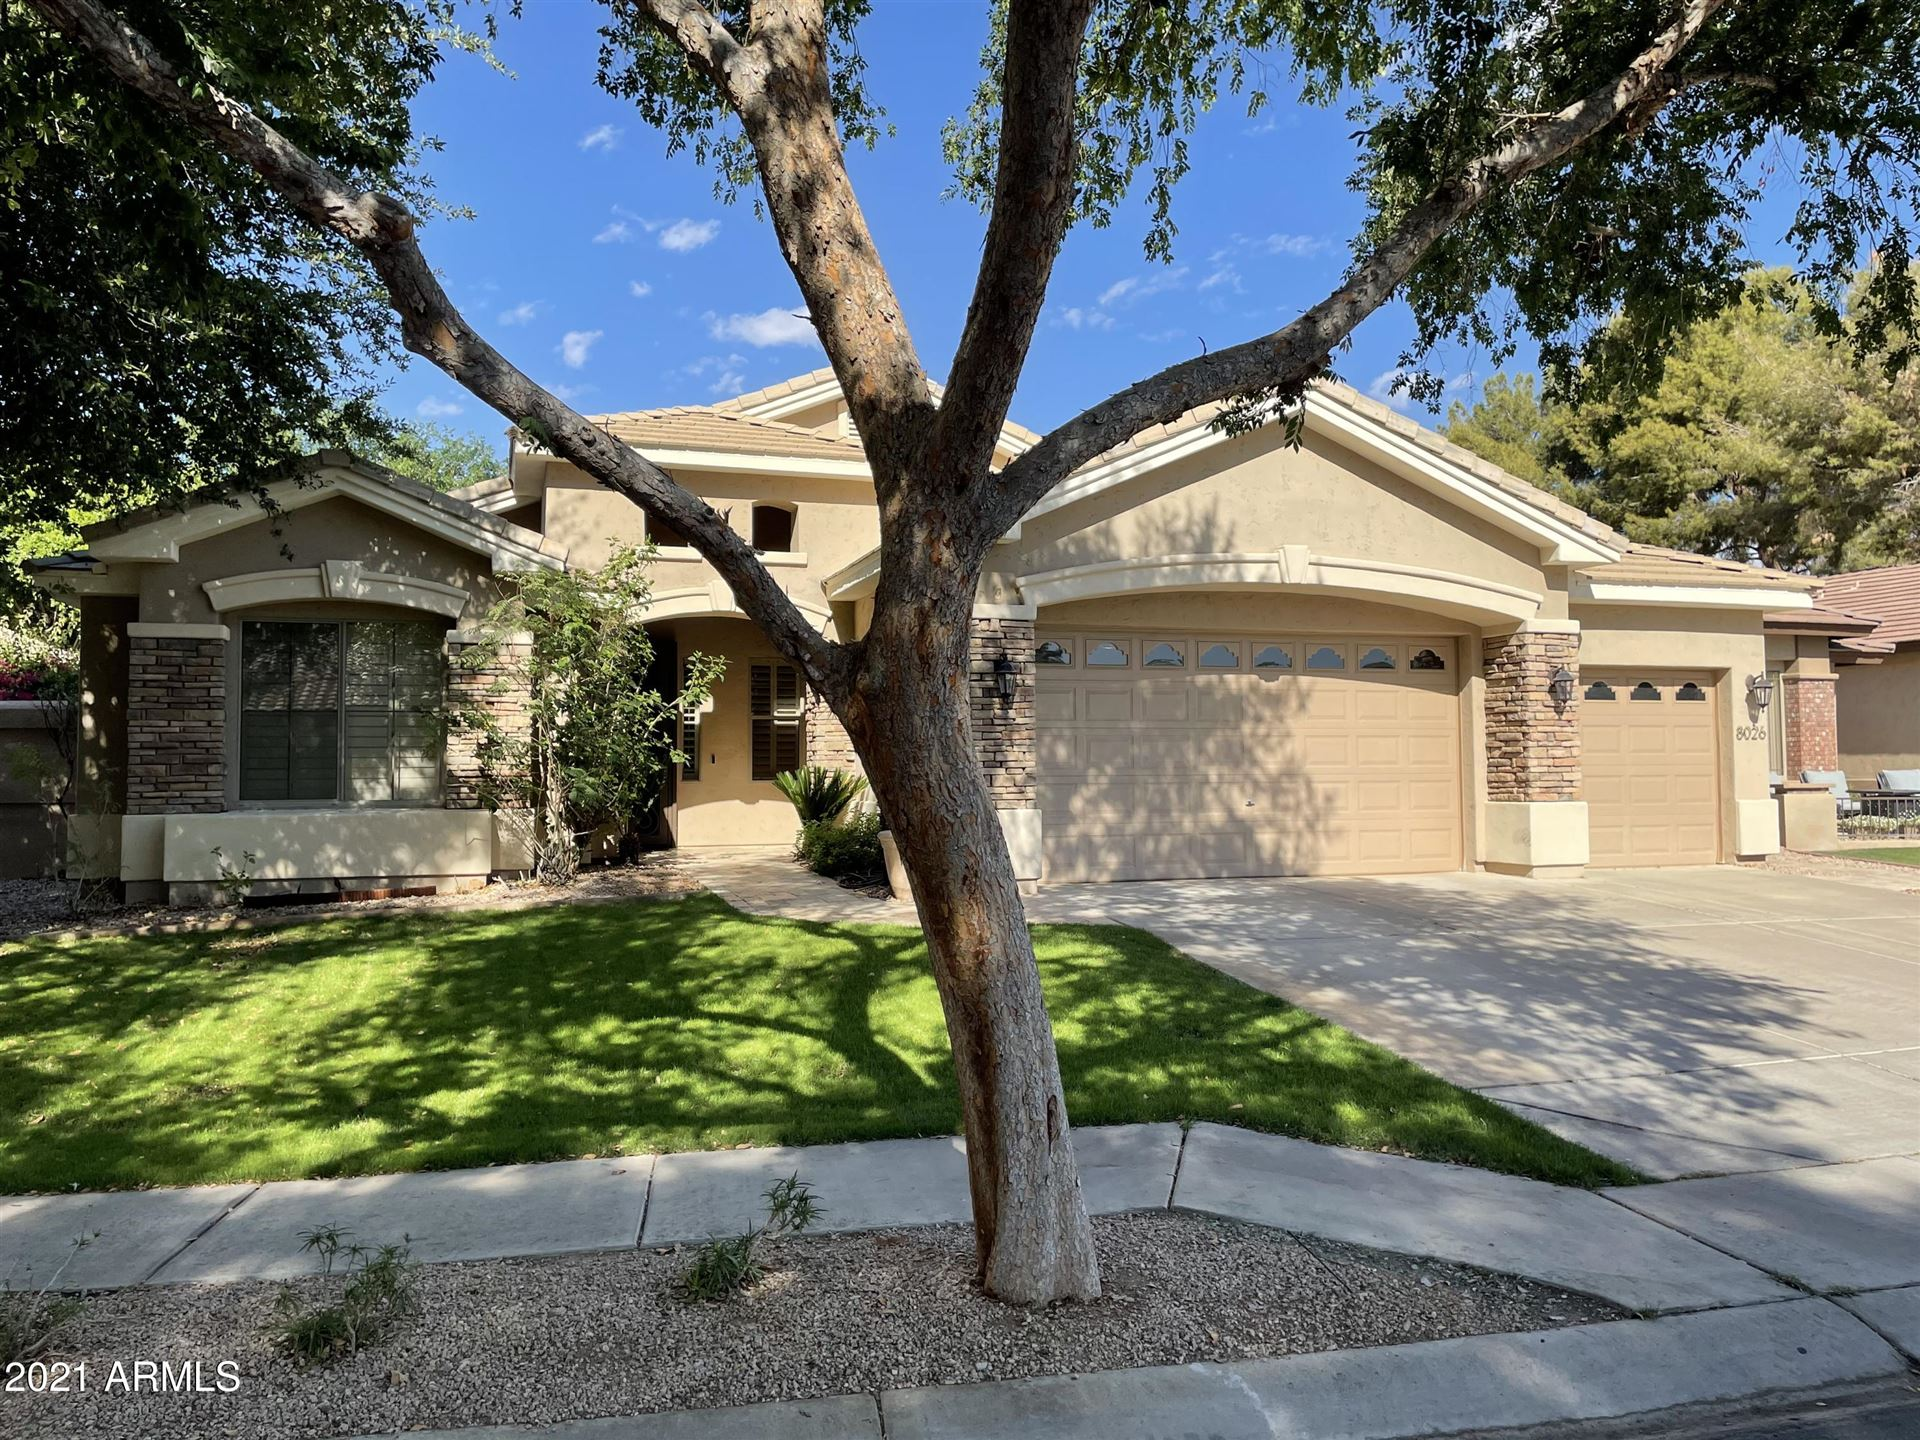 8026 S STEPHANIE Lane, Tempe, AZ 85284 - MLS#: 6224013